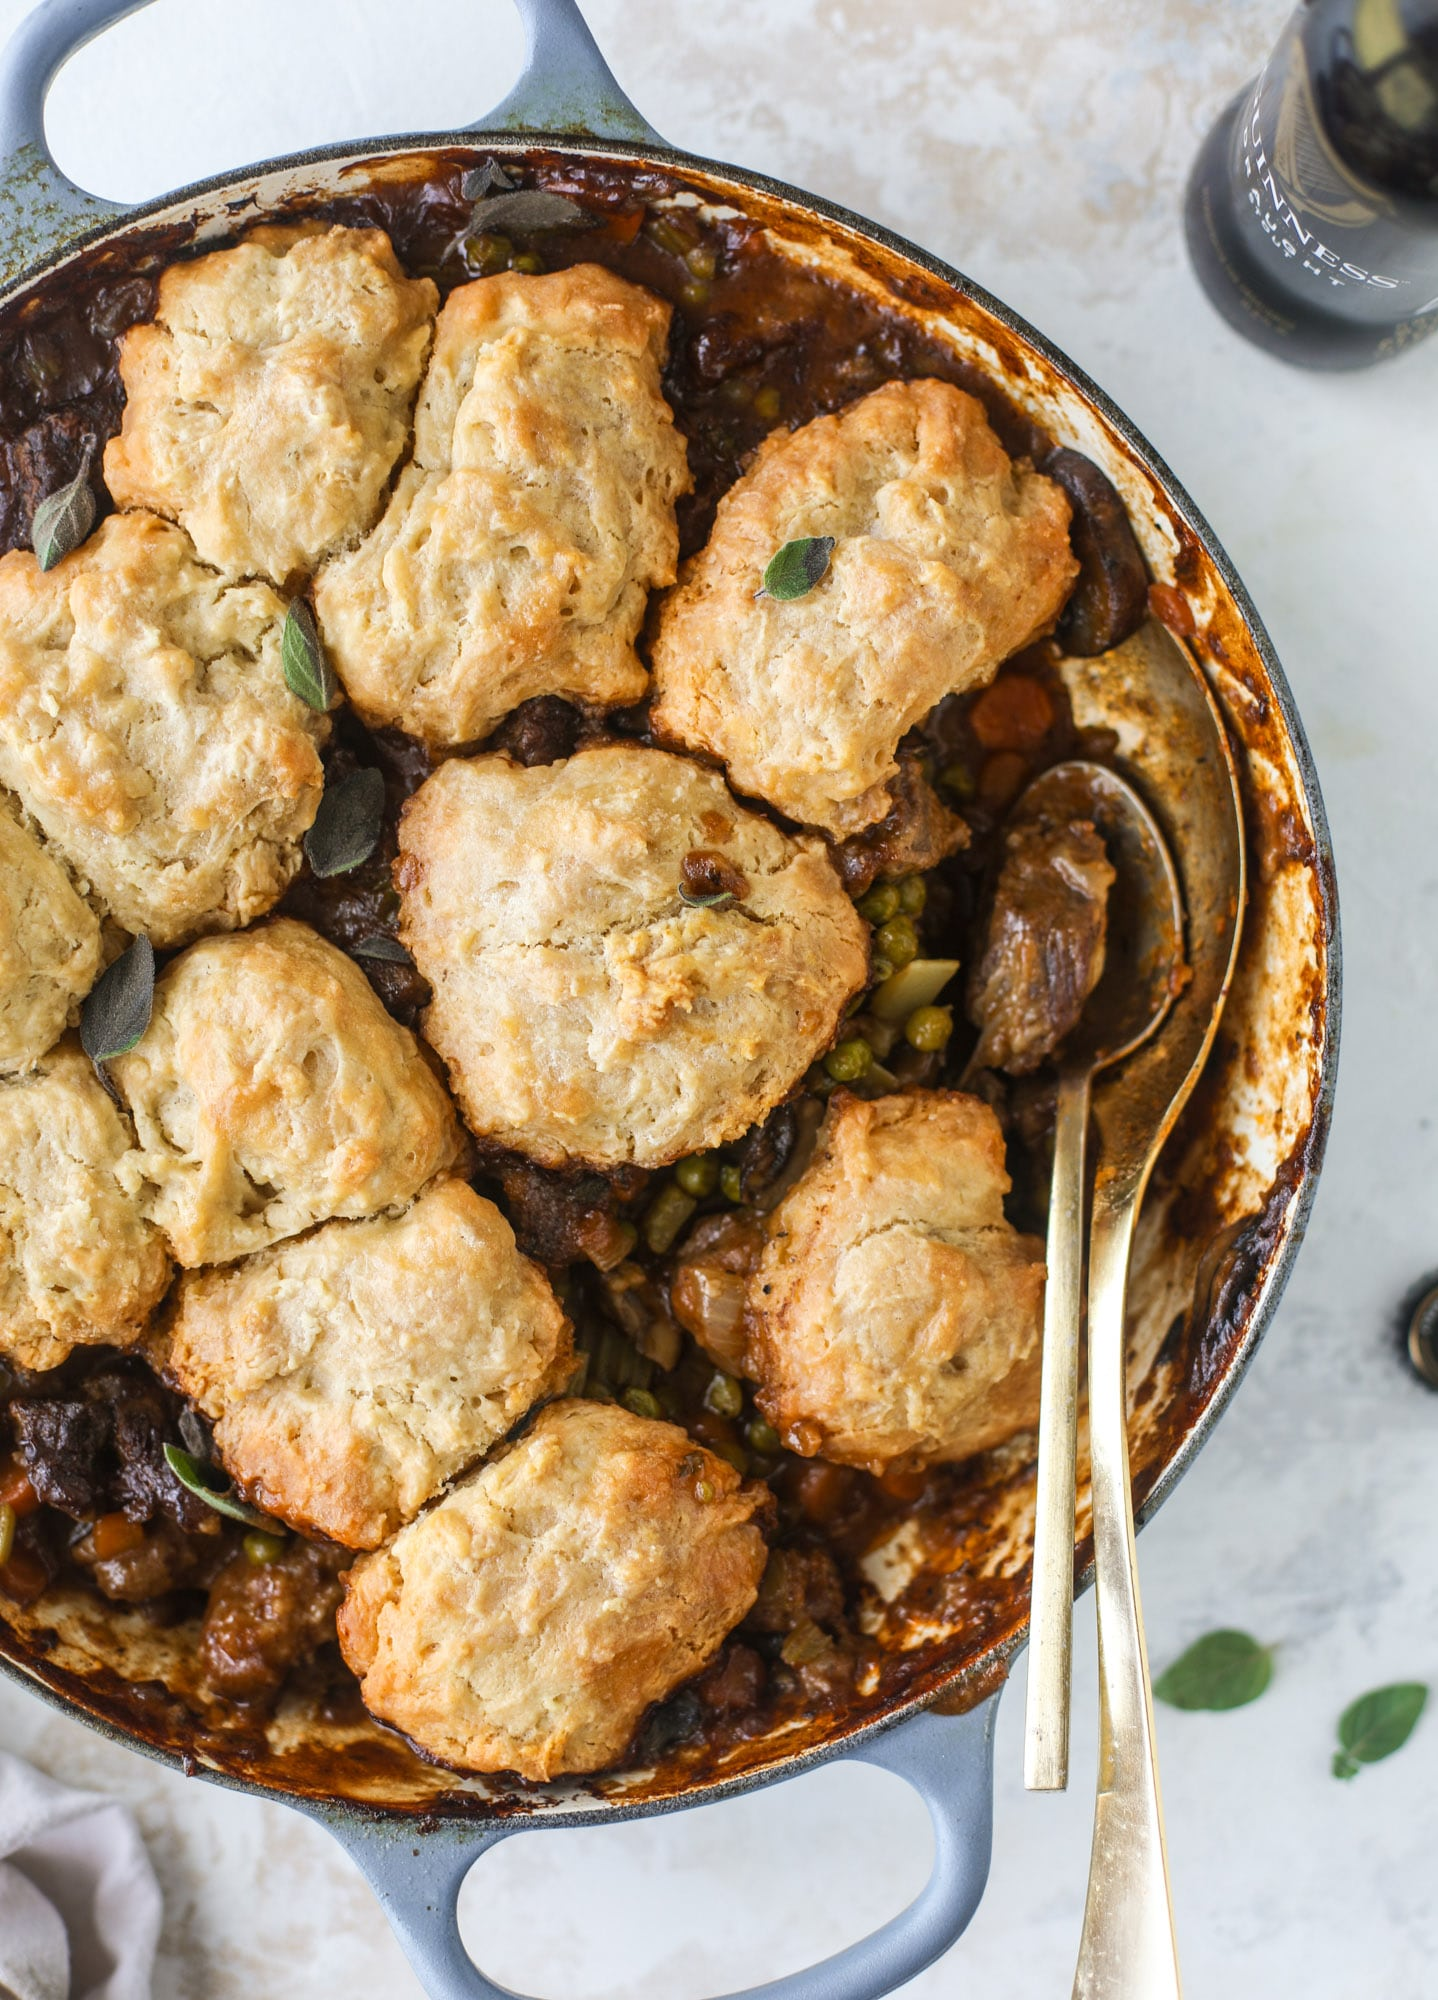 A perfect cold weather comfort food meal, Guiness pot pie has tender, fall-apart beef, lots of vegetables and is topped with buttery beer bread biscuits! I howsweeteats.com #guinness #potpie